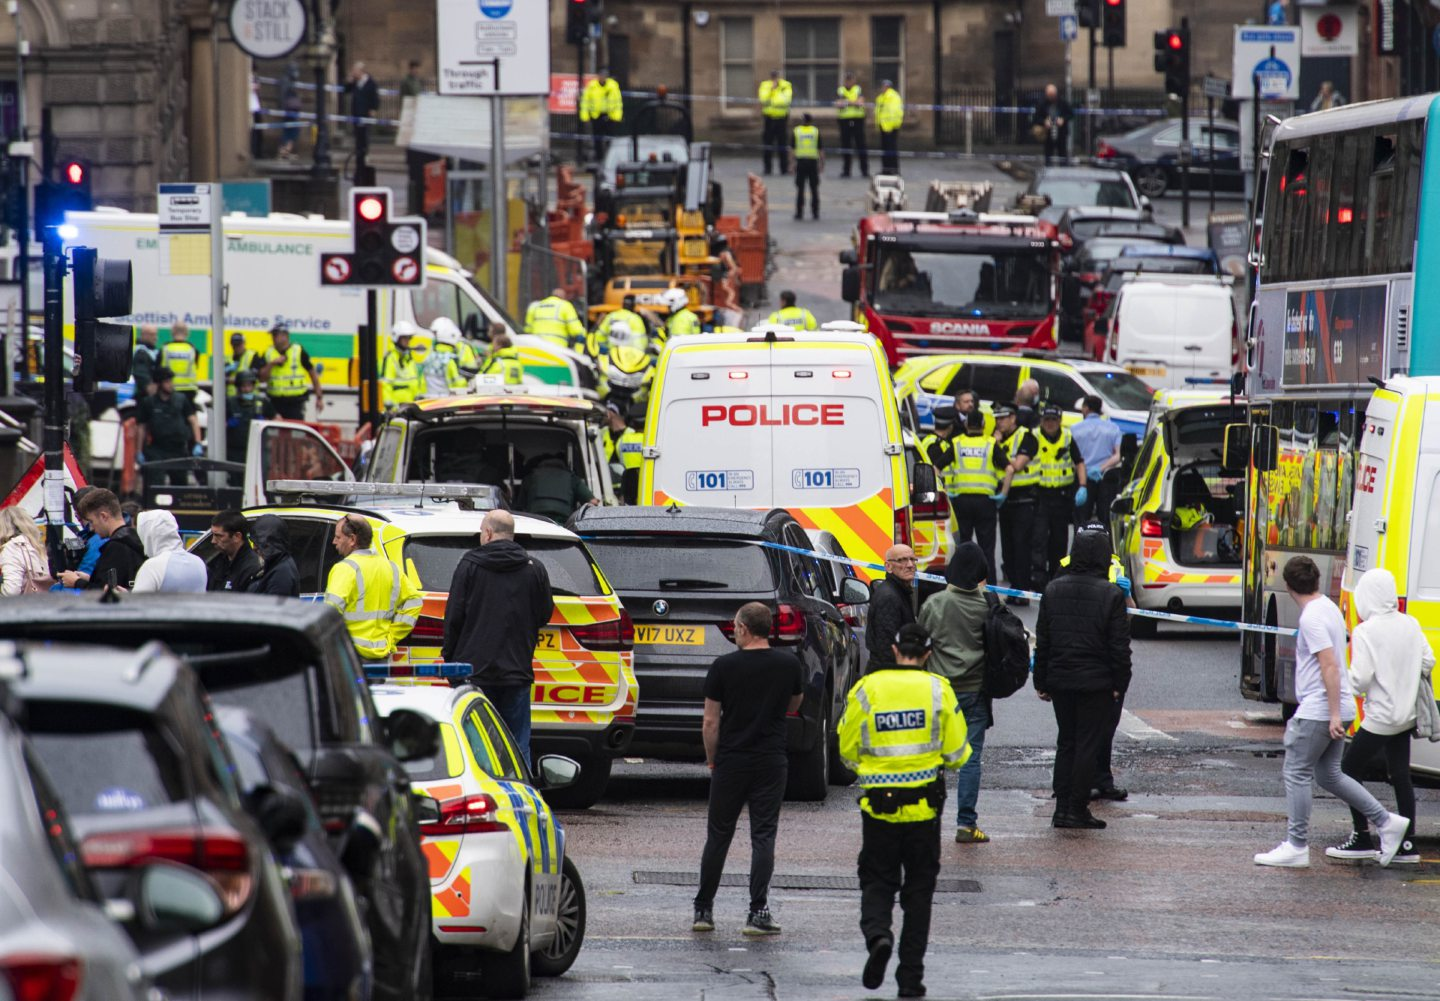 Police respond to major incident on West George Street in Glasgow.